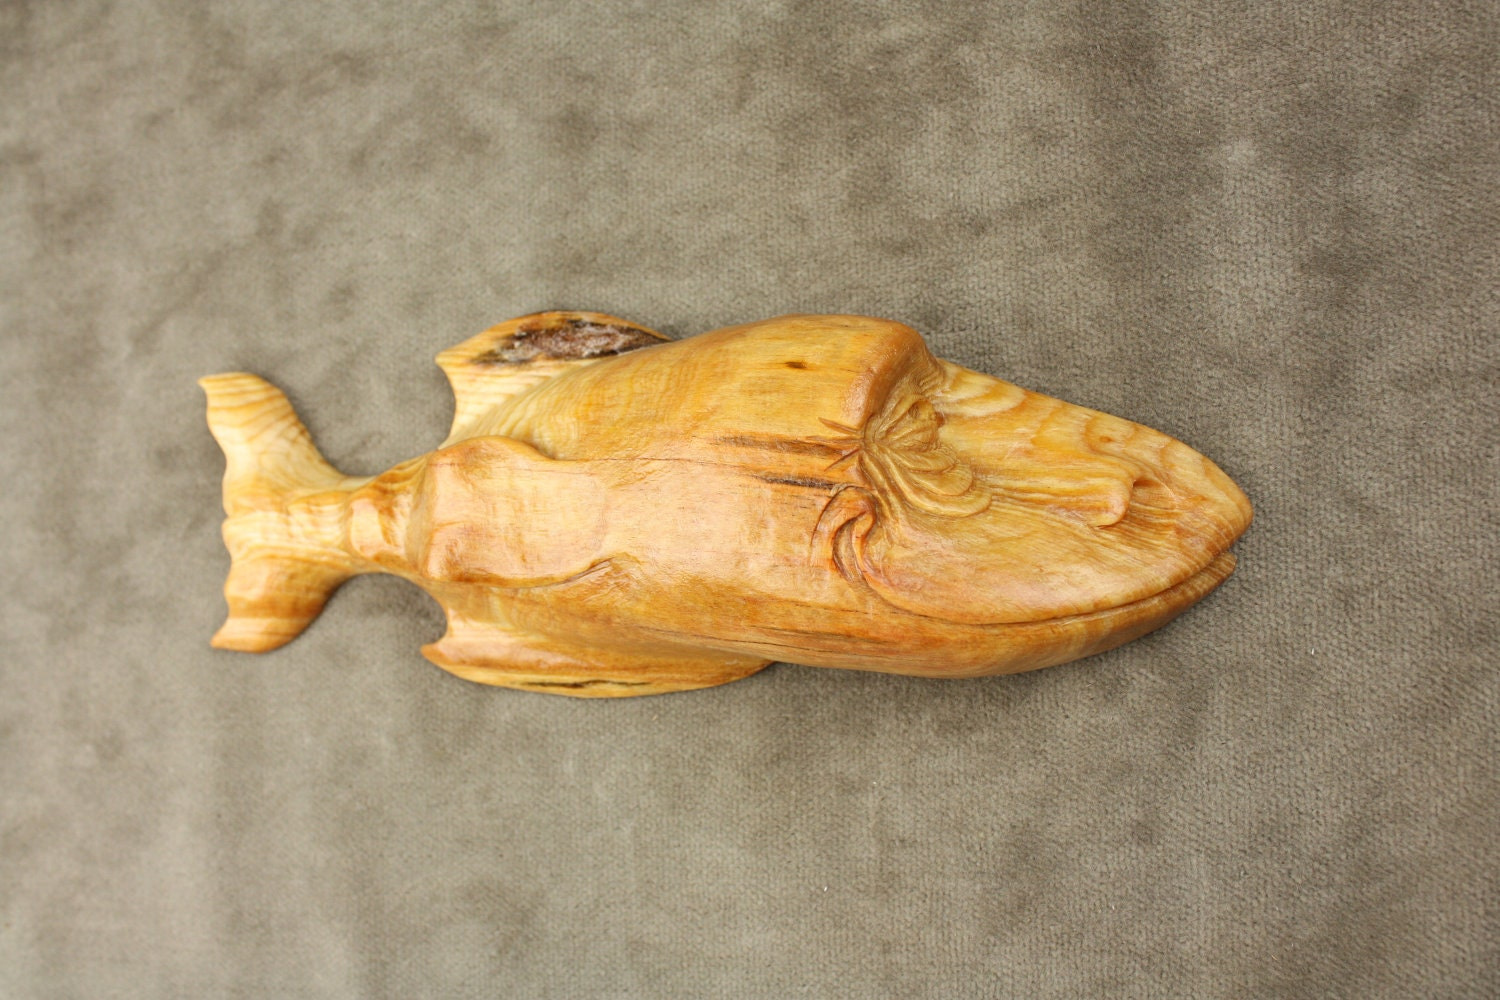 Fish decor mothers day gift wood carving by for Fish wood carving